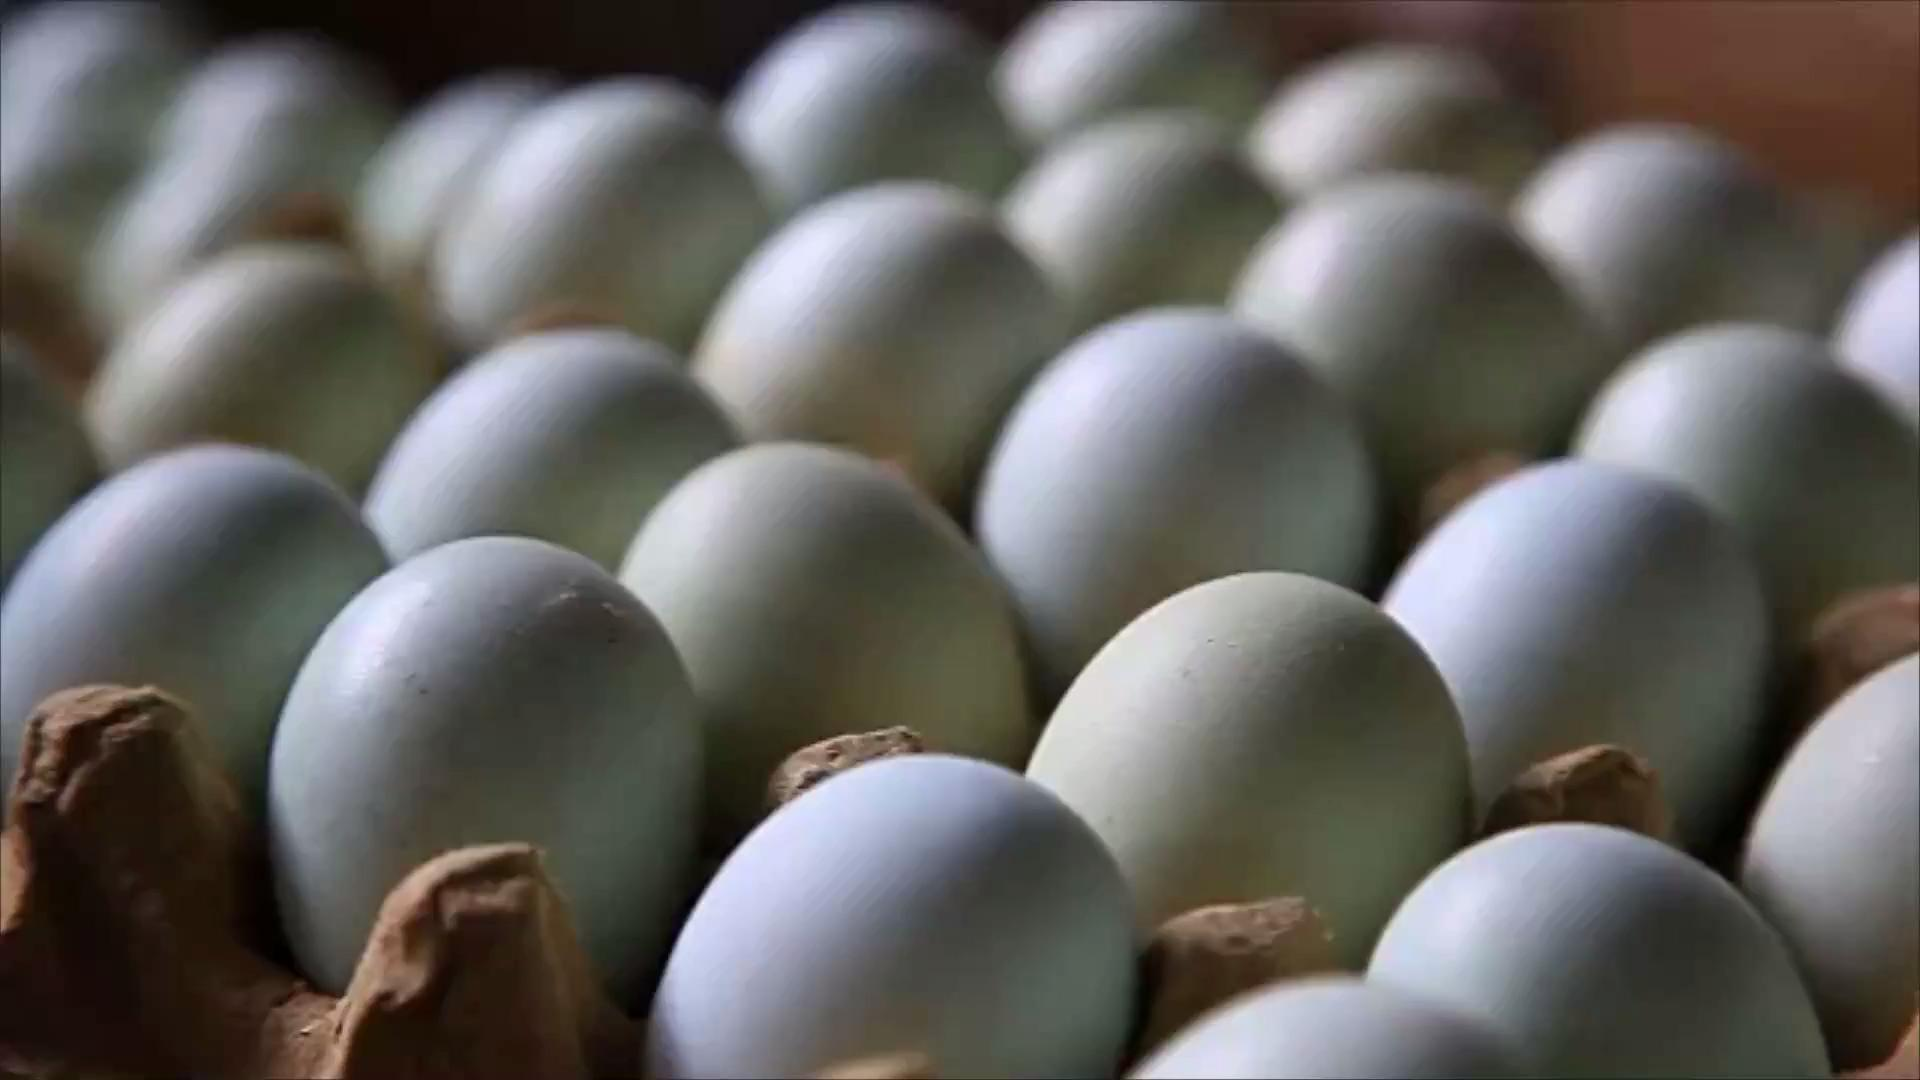 picture This Egg Company Just Recalled 206 Million Eggs—Are You Affected